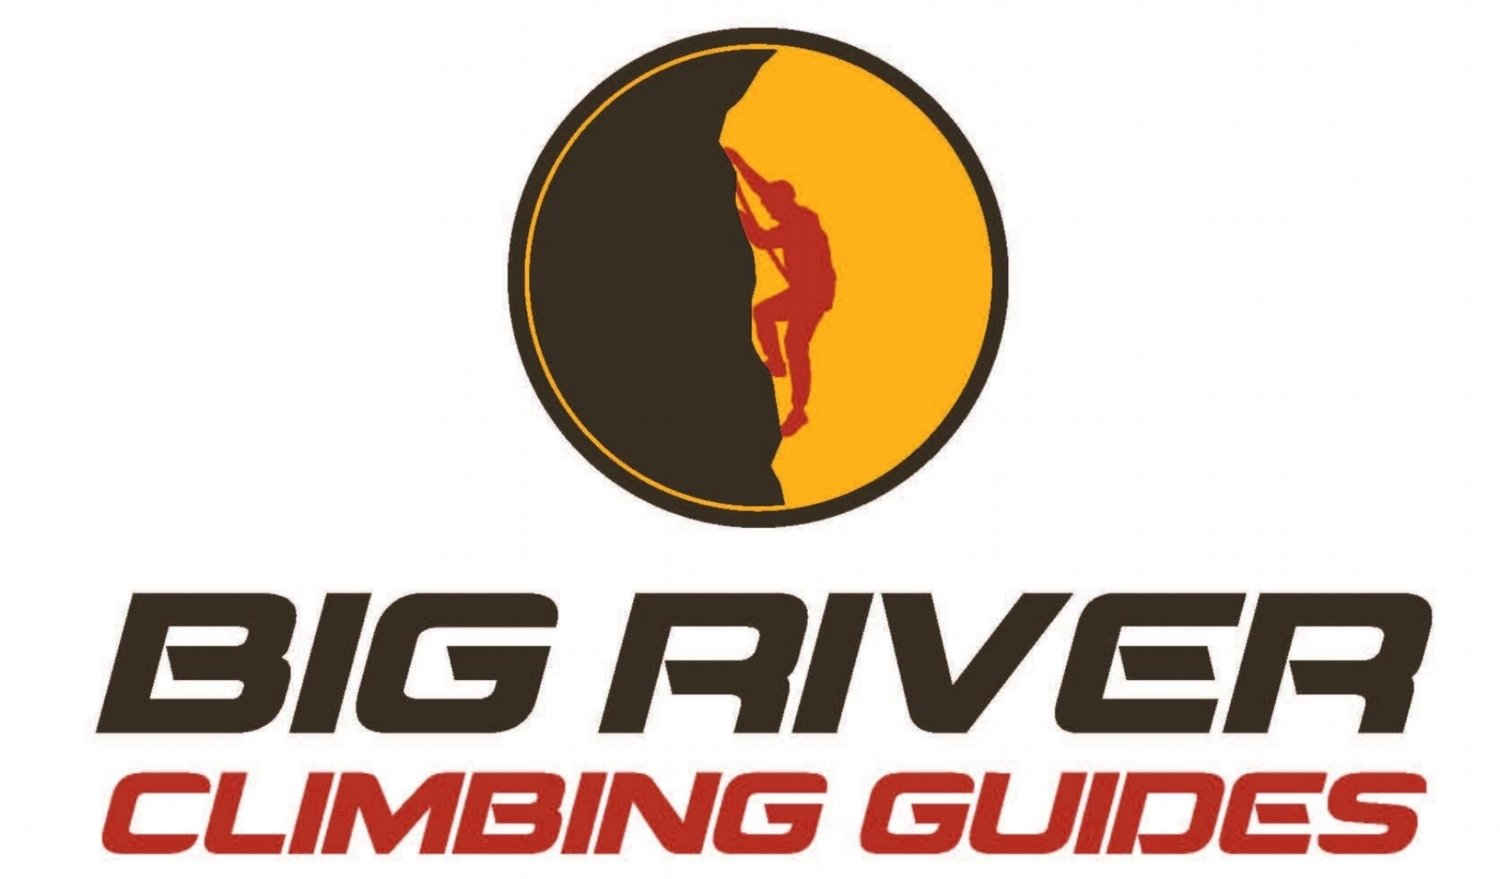 Big River Climbing Guides